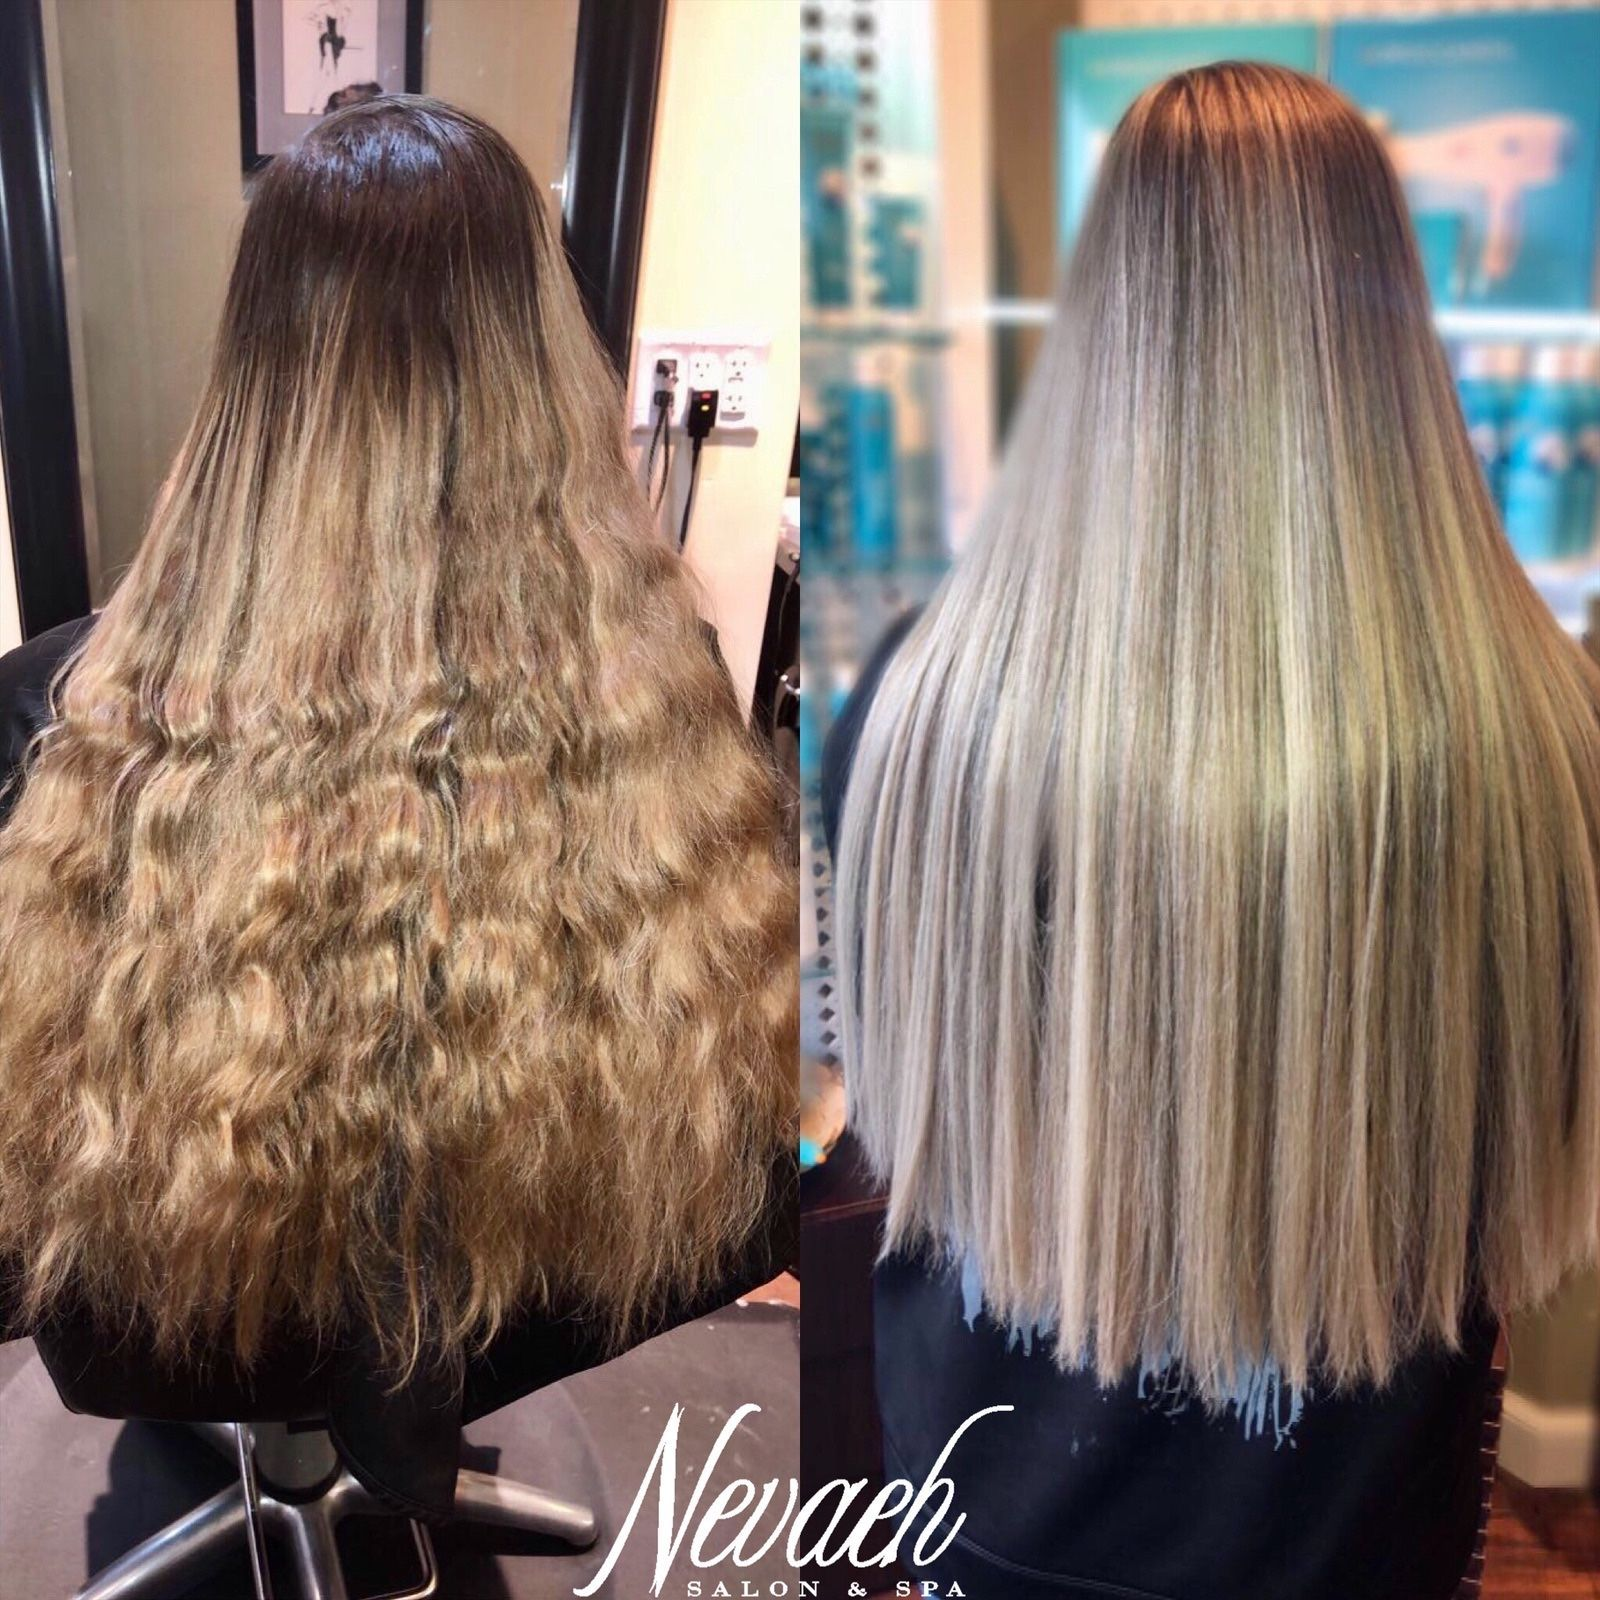 What A Difference Full Highlight And Blow Out By Rachelle Nevaehsalonspa Nevaehsalonspahartville Highlights Hair In 2020 Long Hair Styles Hair Styles Hair